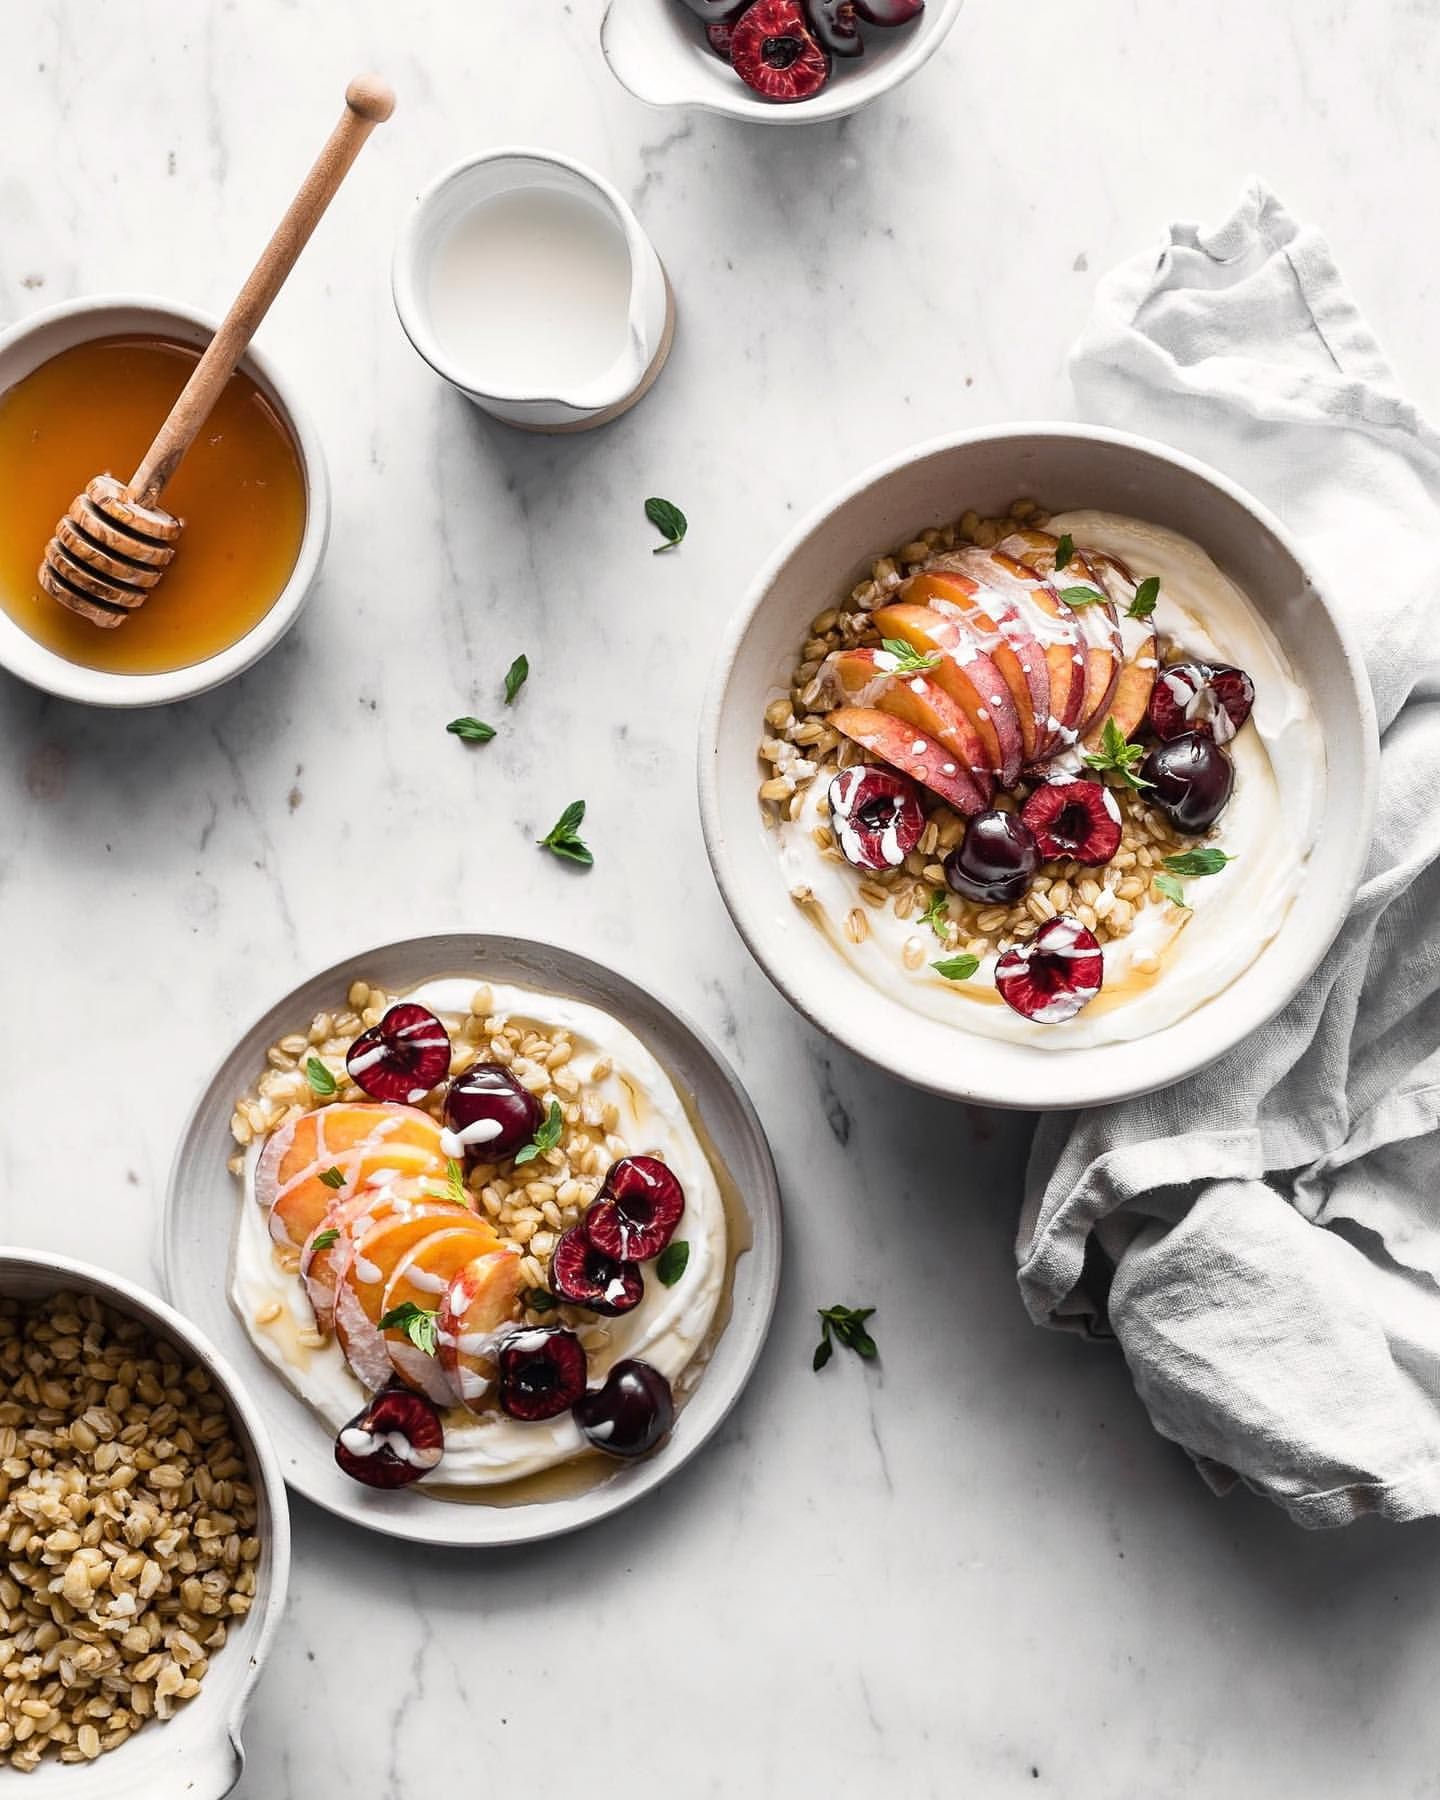 Yogurt Bowls with Fruit and Grains